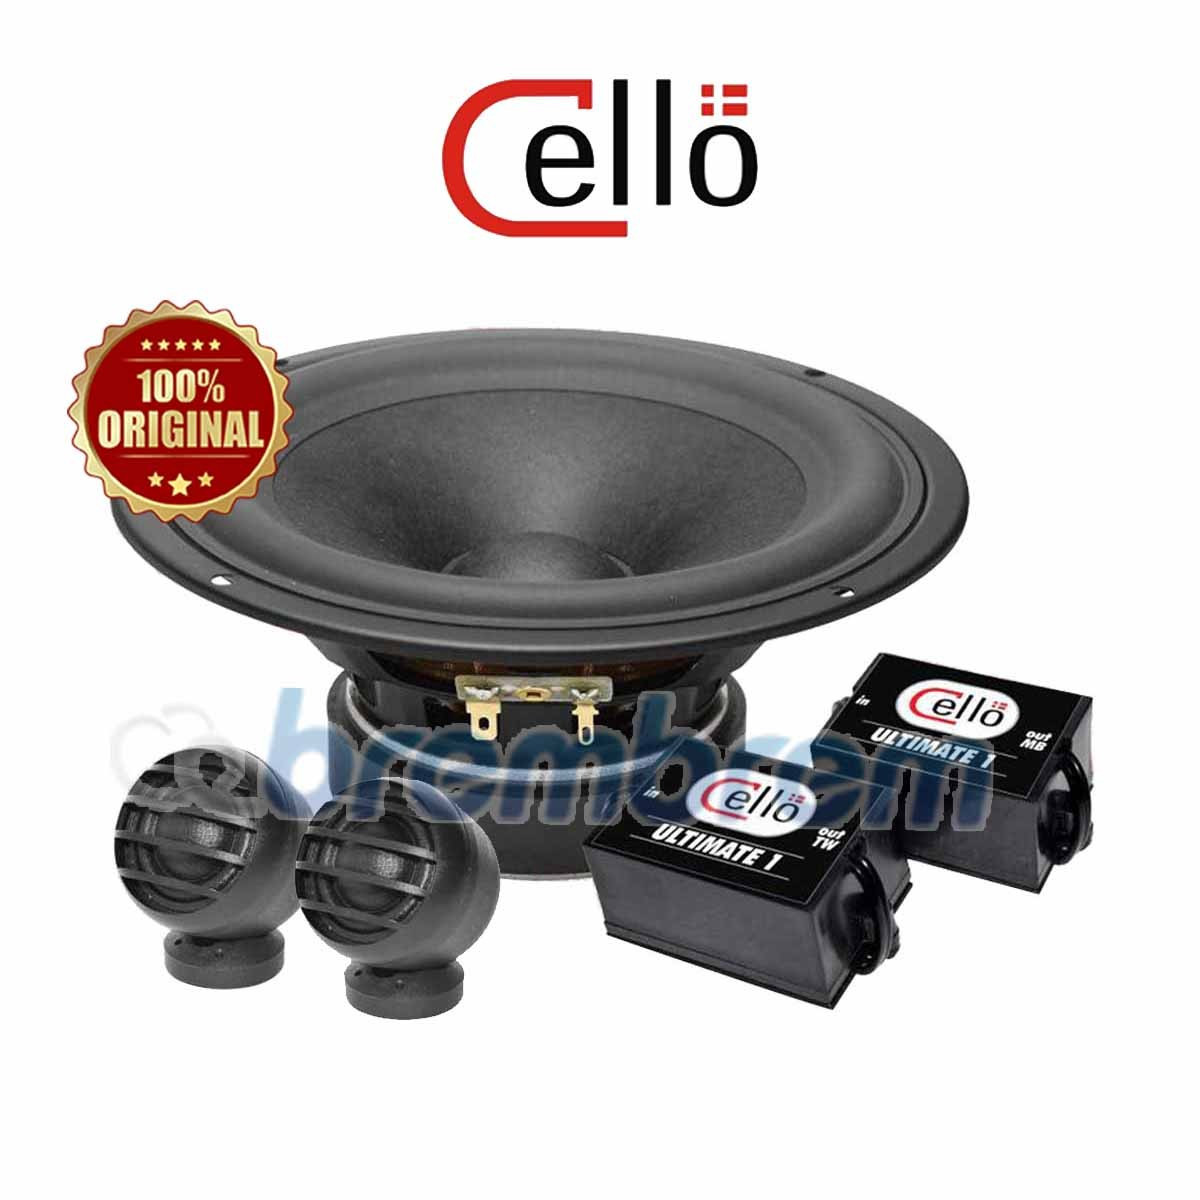 CELLO ULTIMATE 1 NEW - SPEAKER 2 WAY